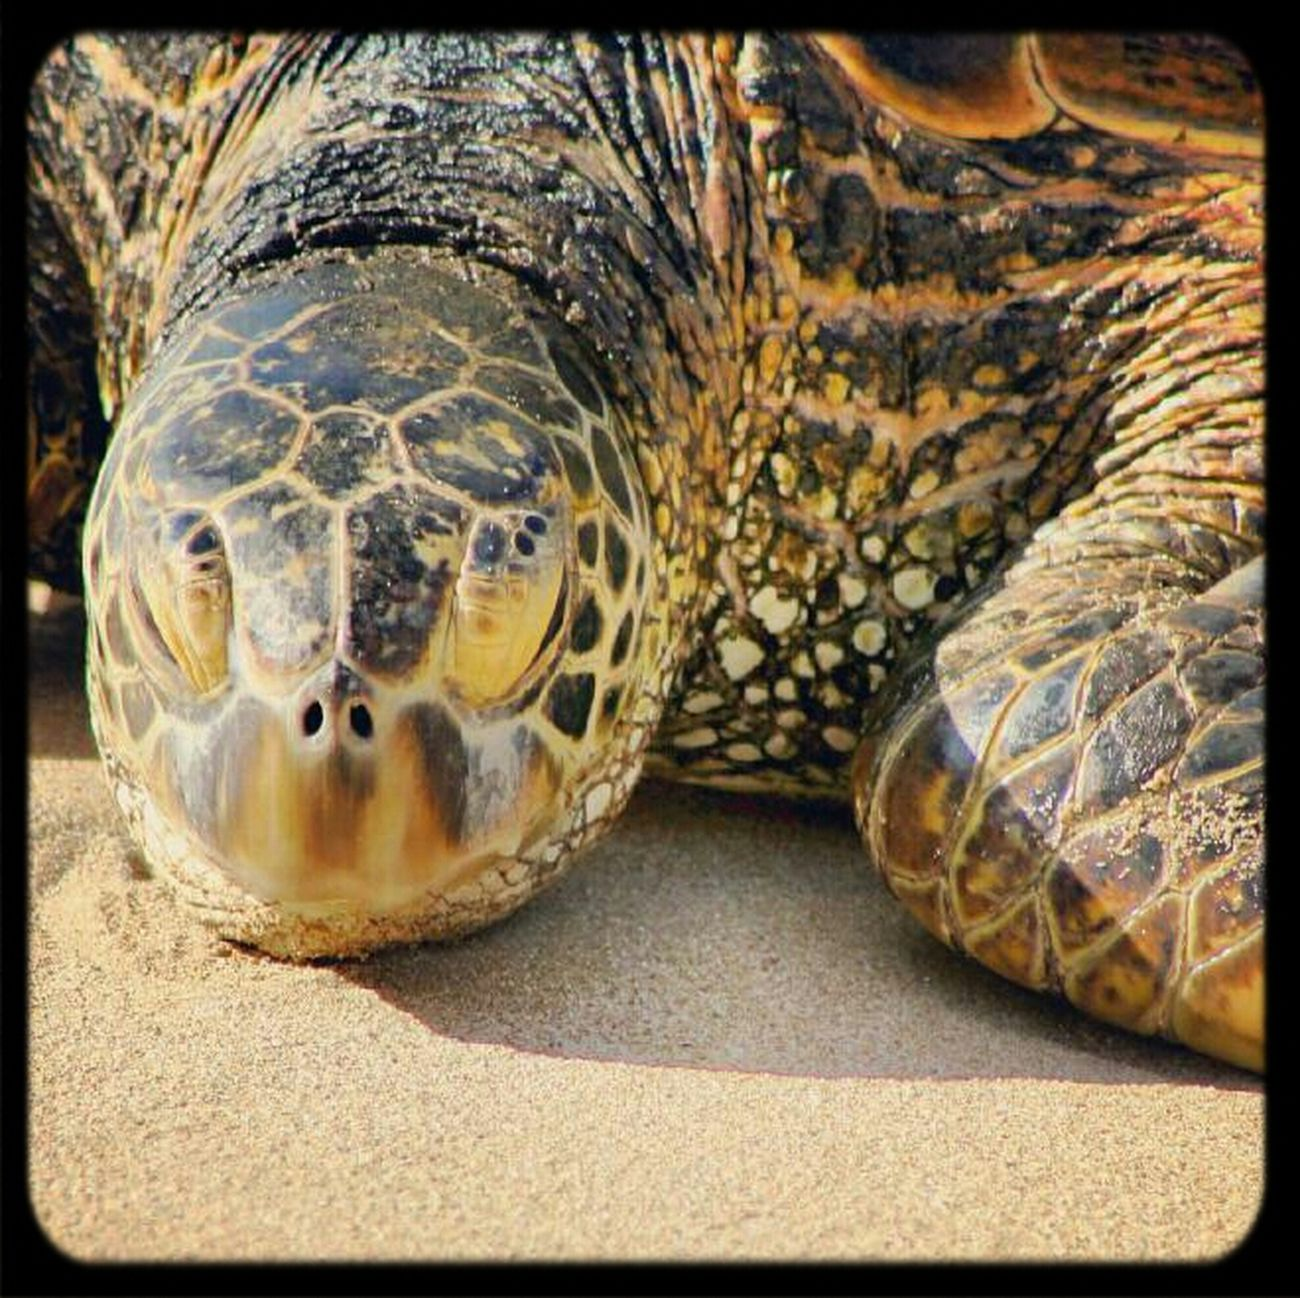 Turtles Sea Turtle Honolulu, Hawaii North Shore Honu